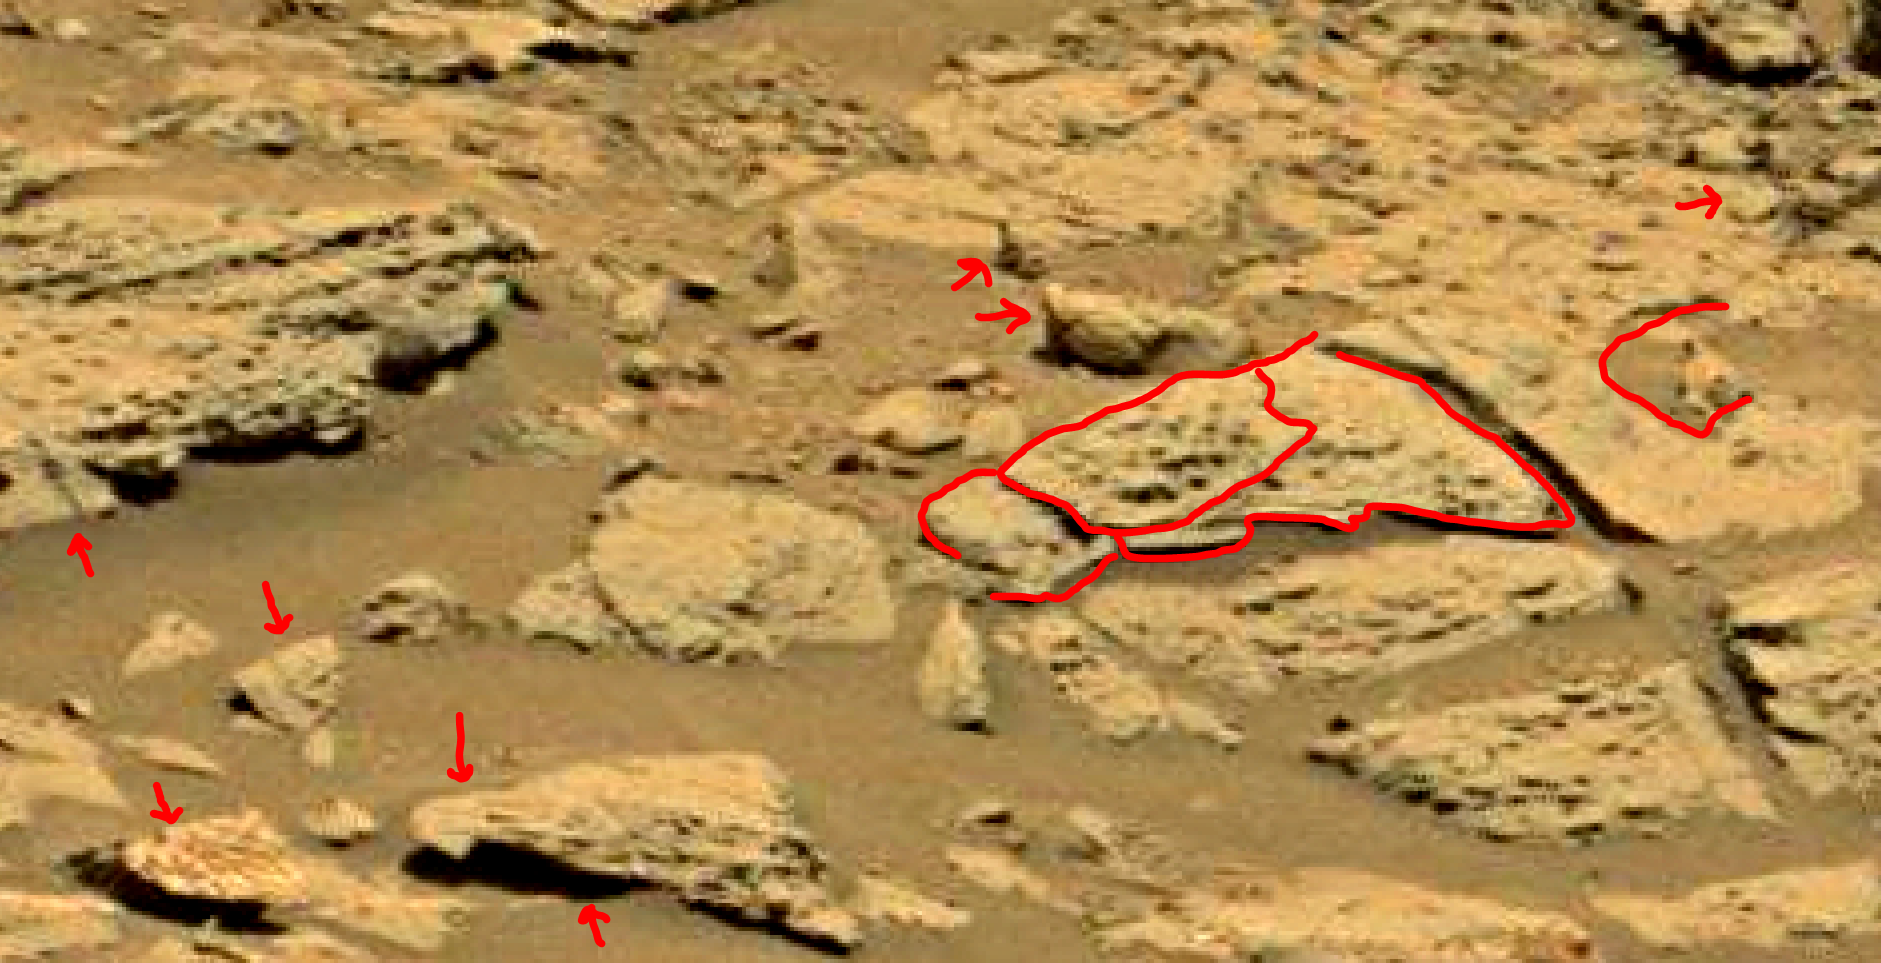 mars sol 1353 anomaly-artifacts 65 was life on mars